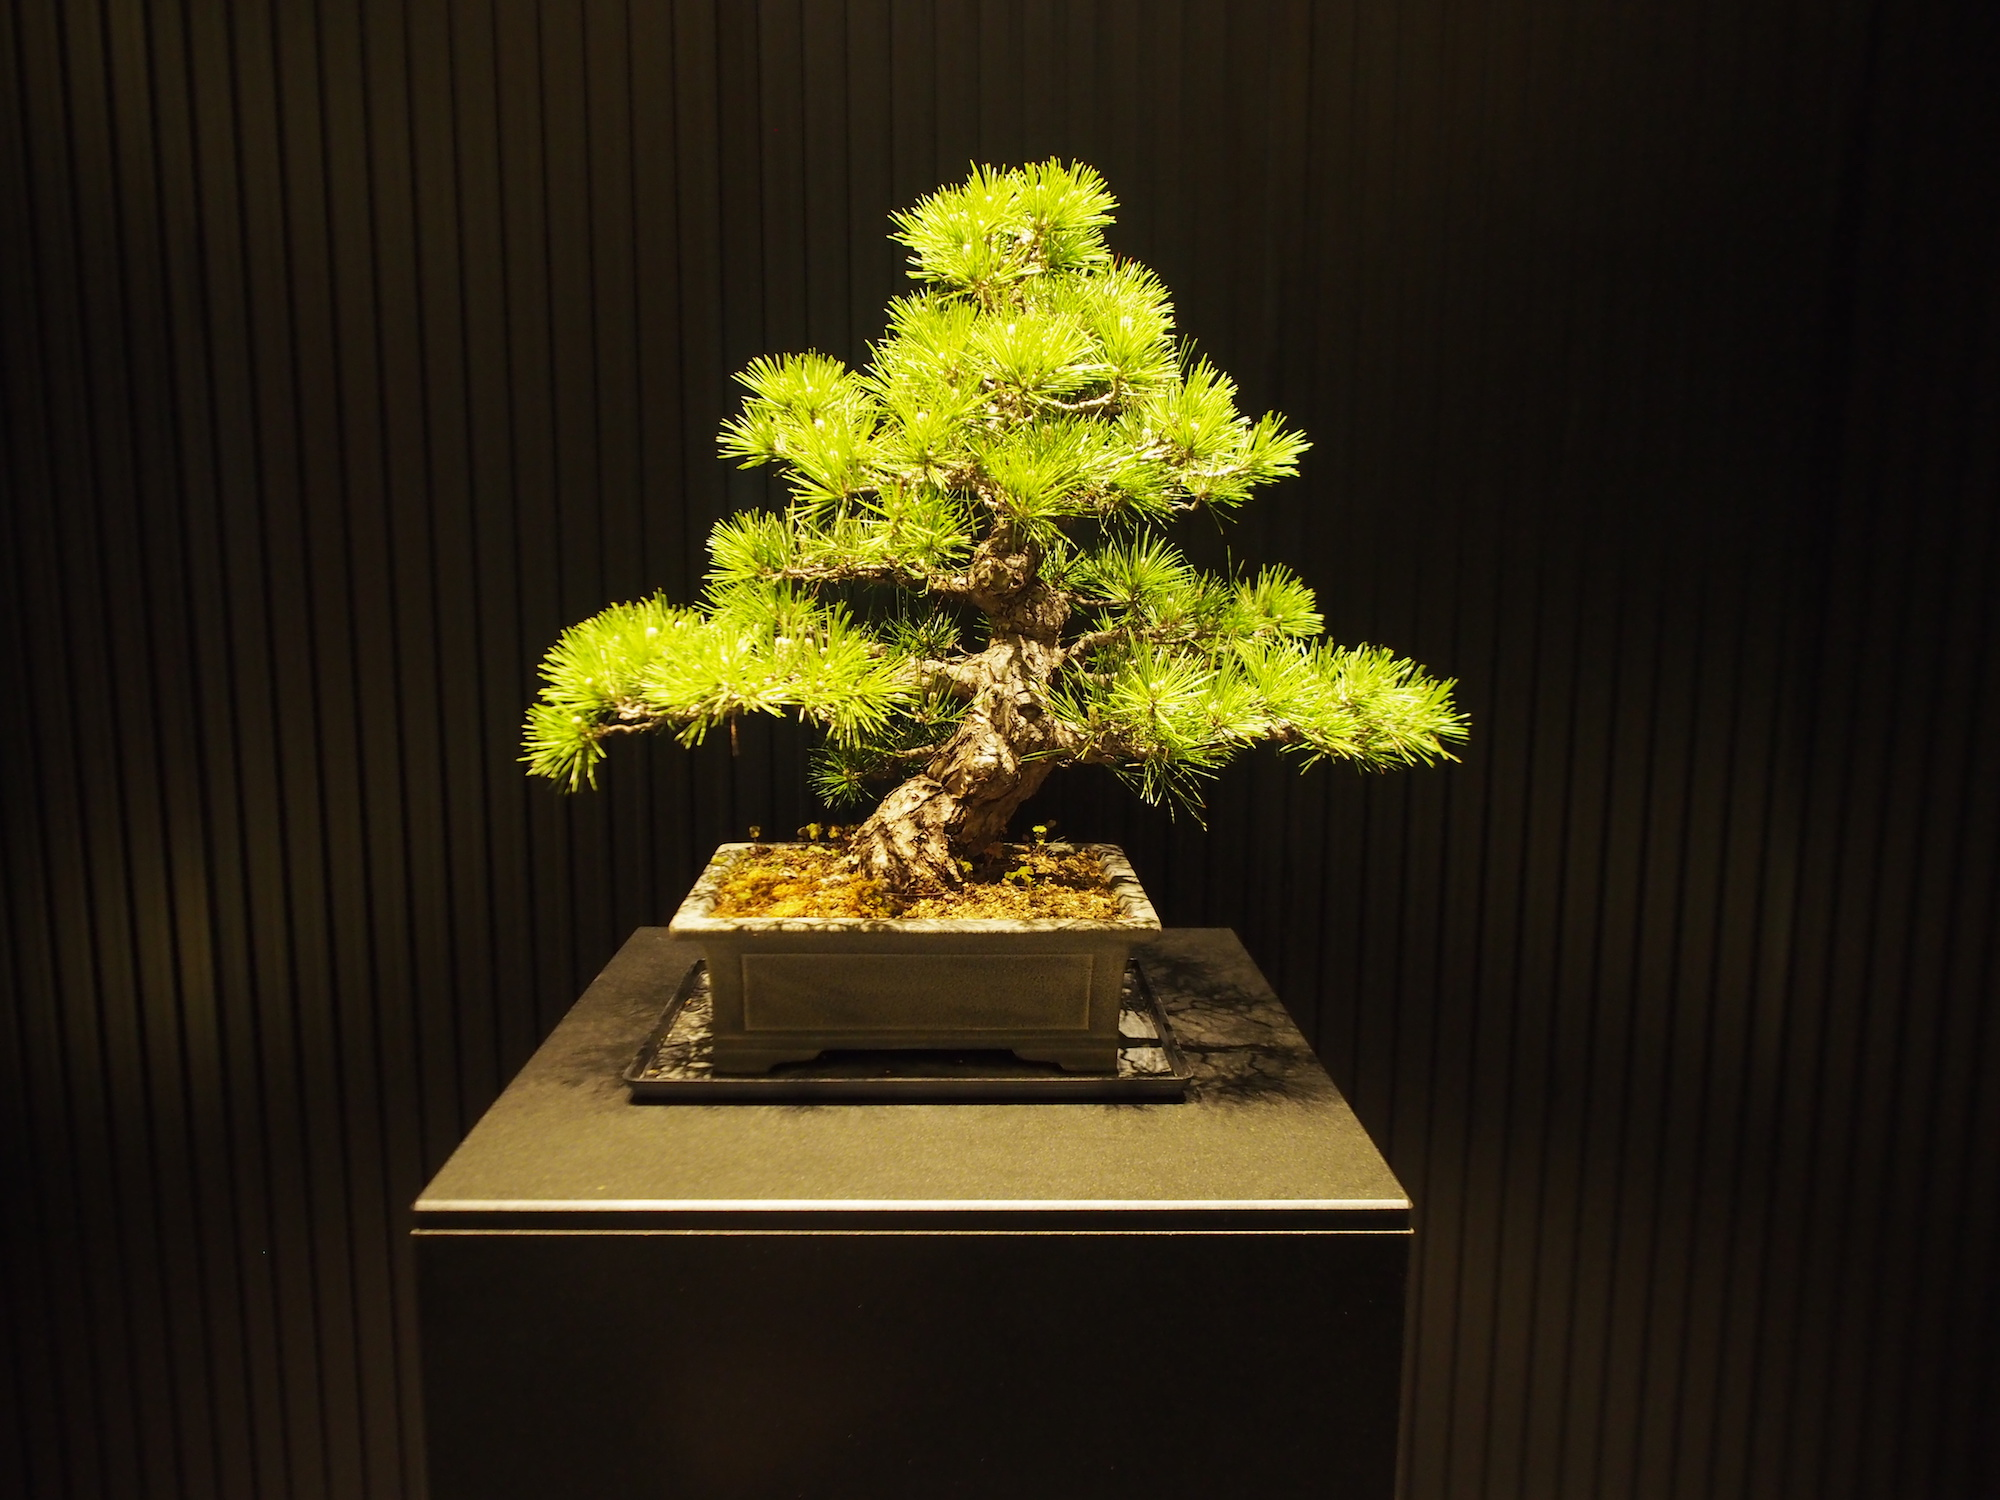 Note how the bonsai plant mimics the proportions of a full size tree. ©TOKI